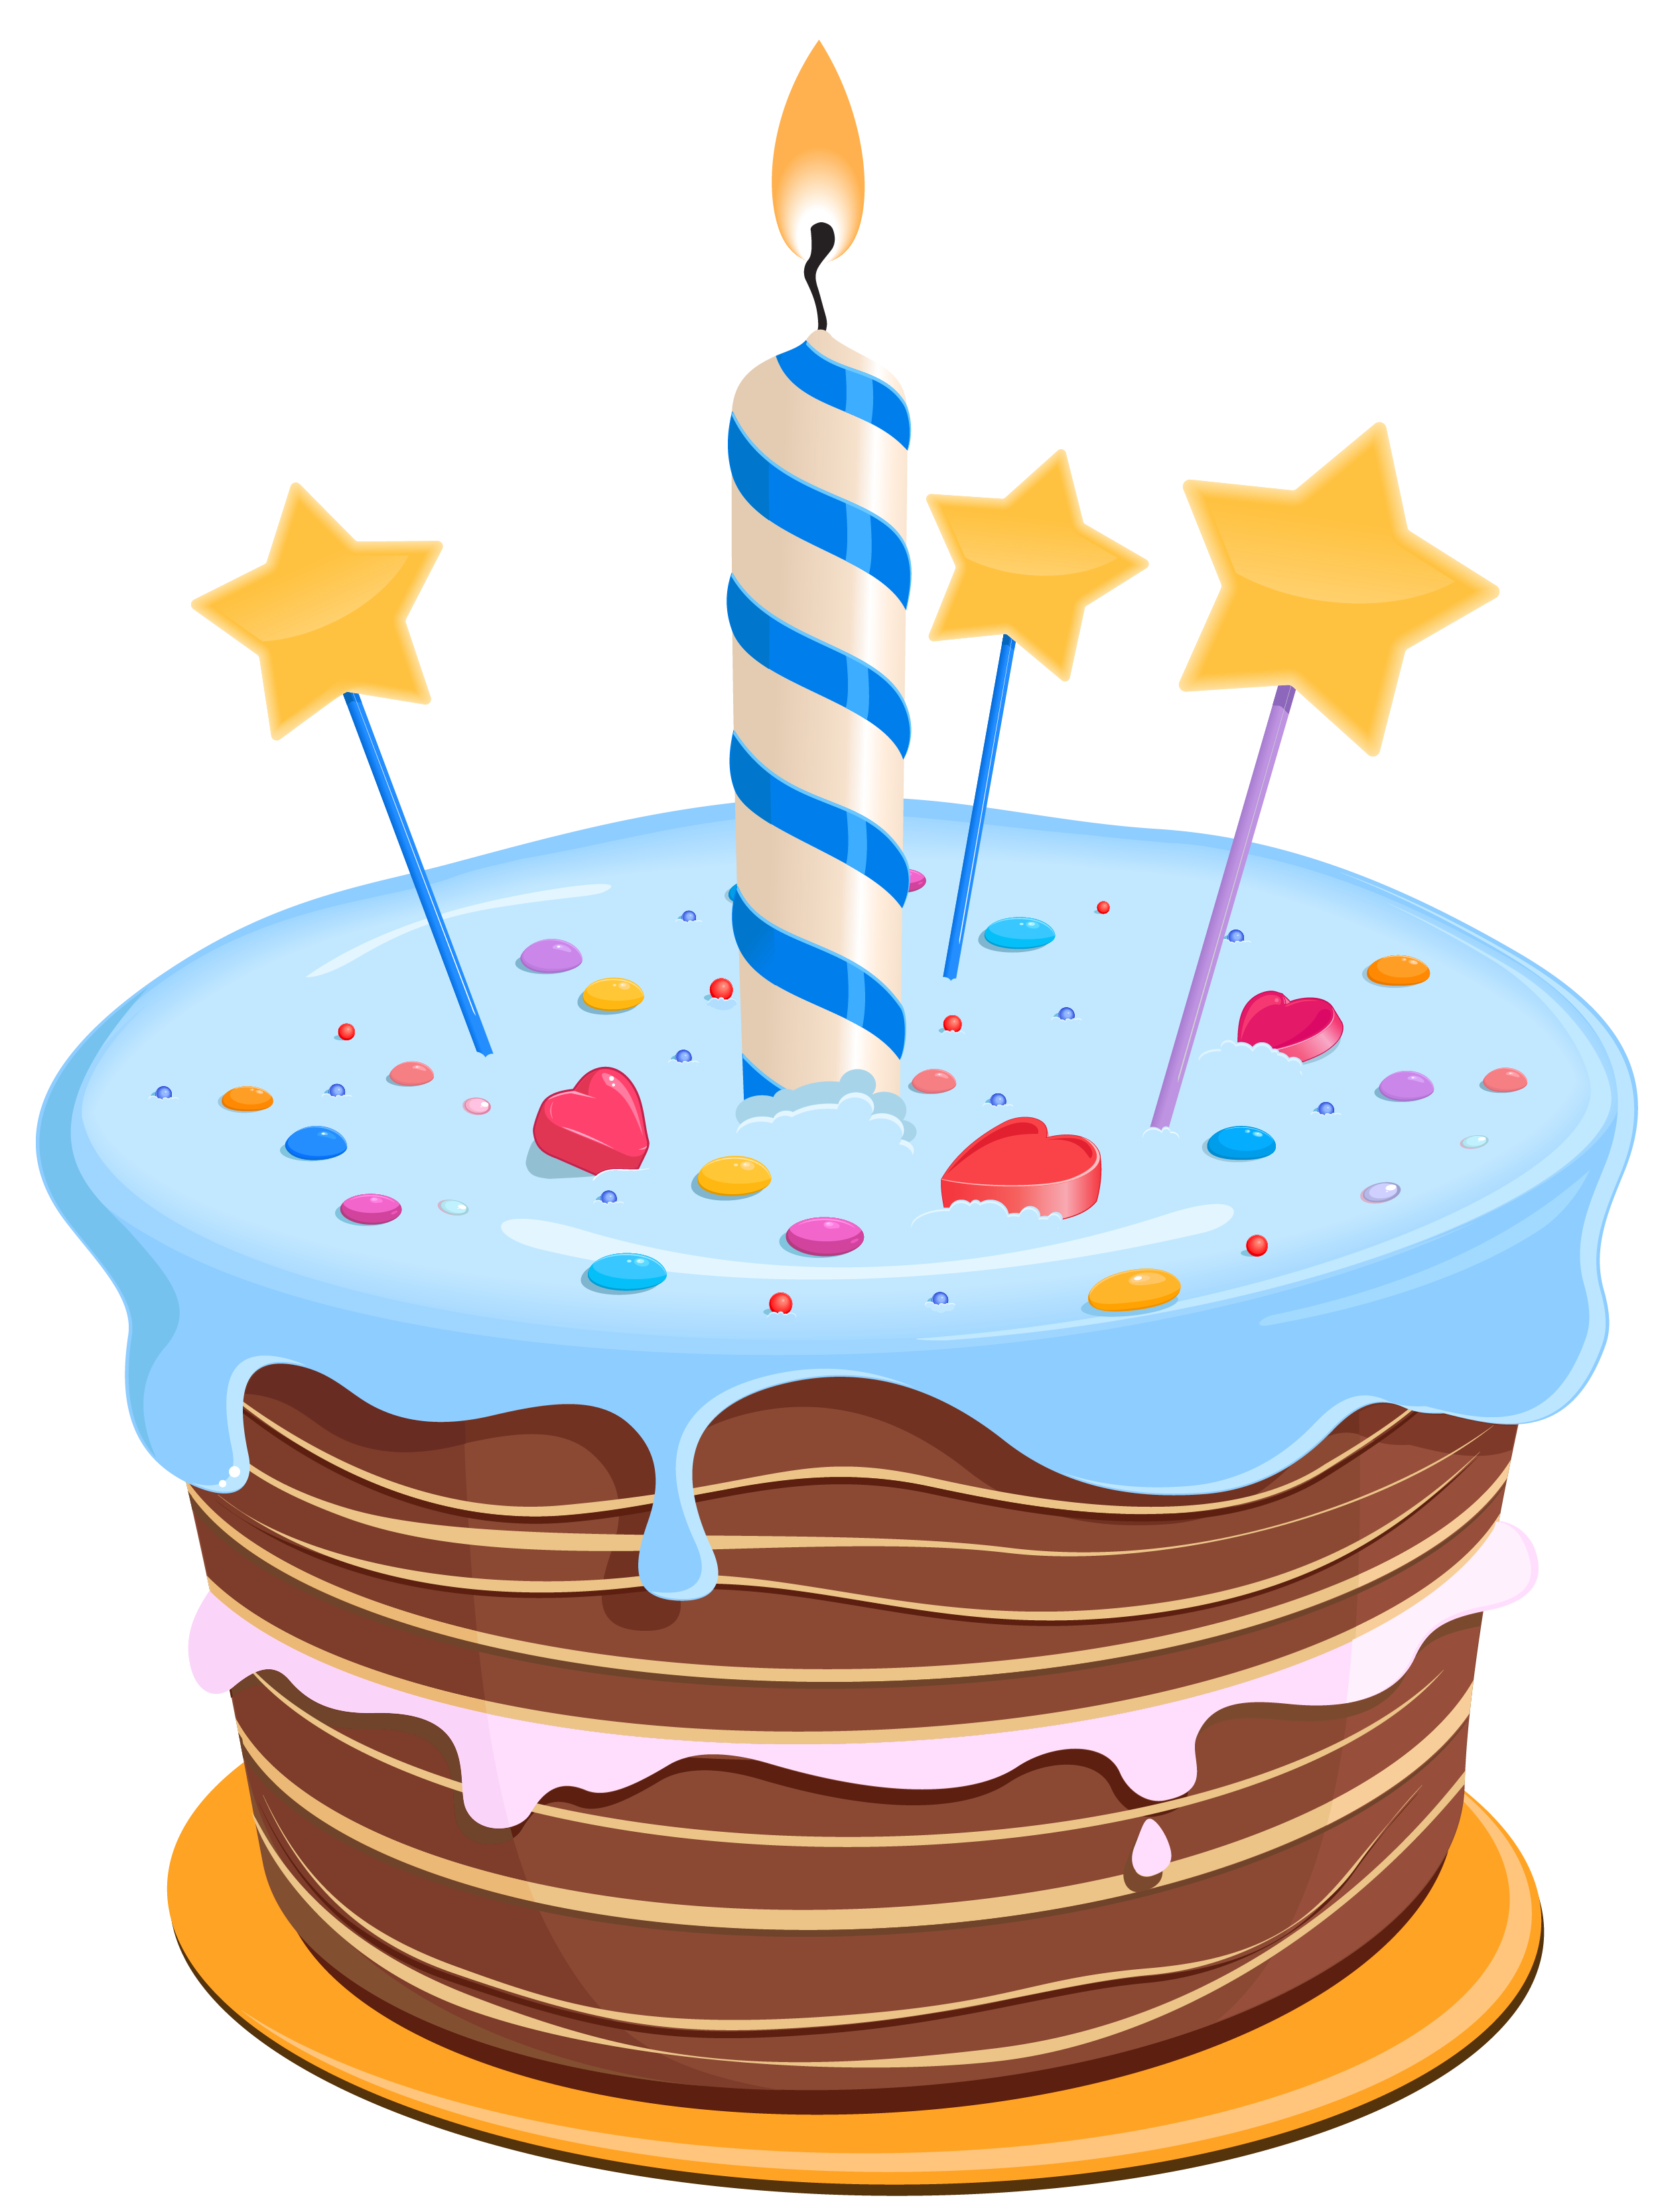 download birthday cake png clipart png image pngimg #9756